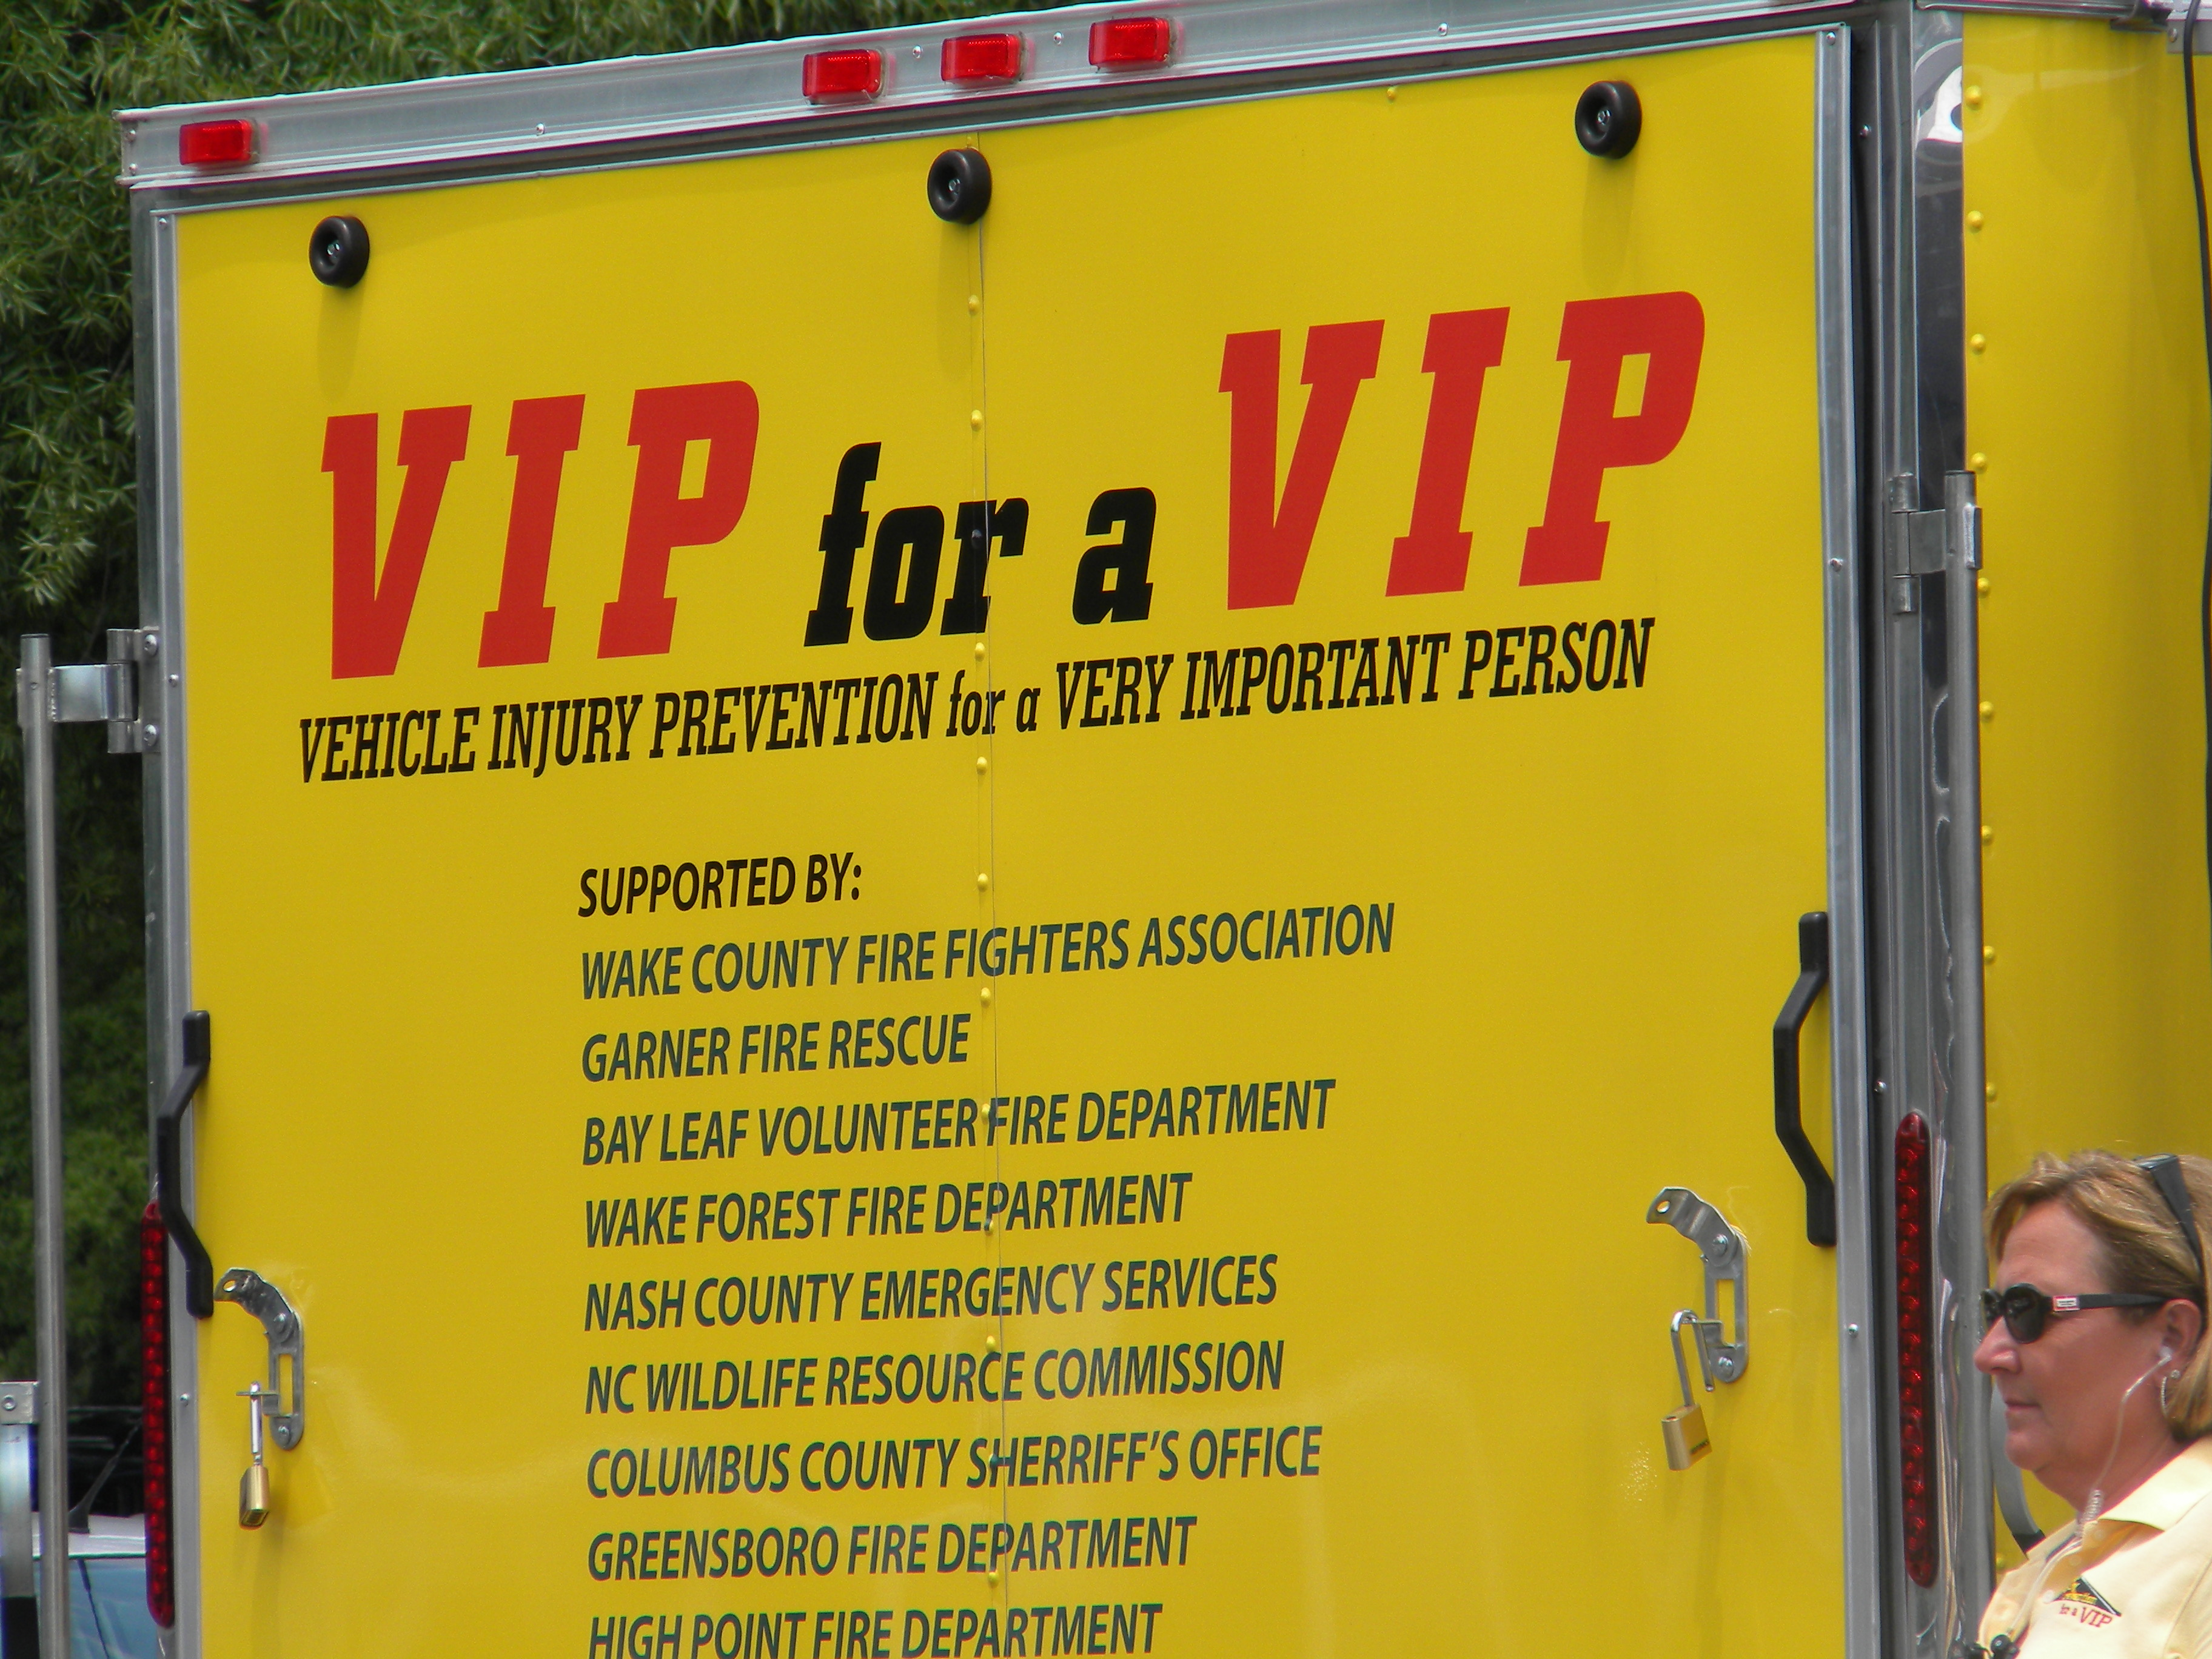 Pictured here is the VIP for VIP trailer during the second part of the presentation. For this outdoor session, the organization acted out a scenario where a young teen crashed into a telephone pole after drinking and driving.